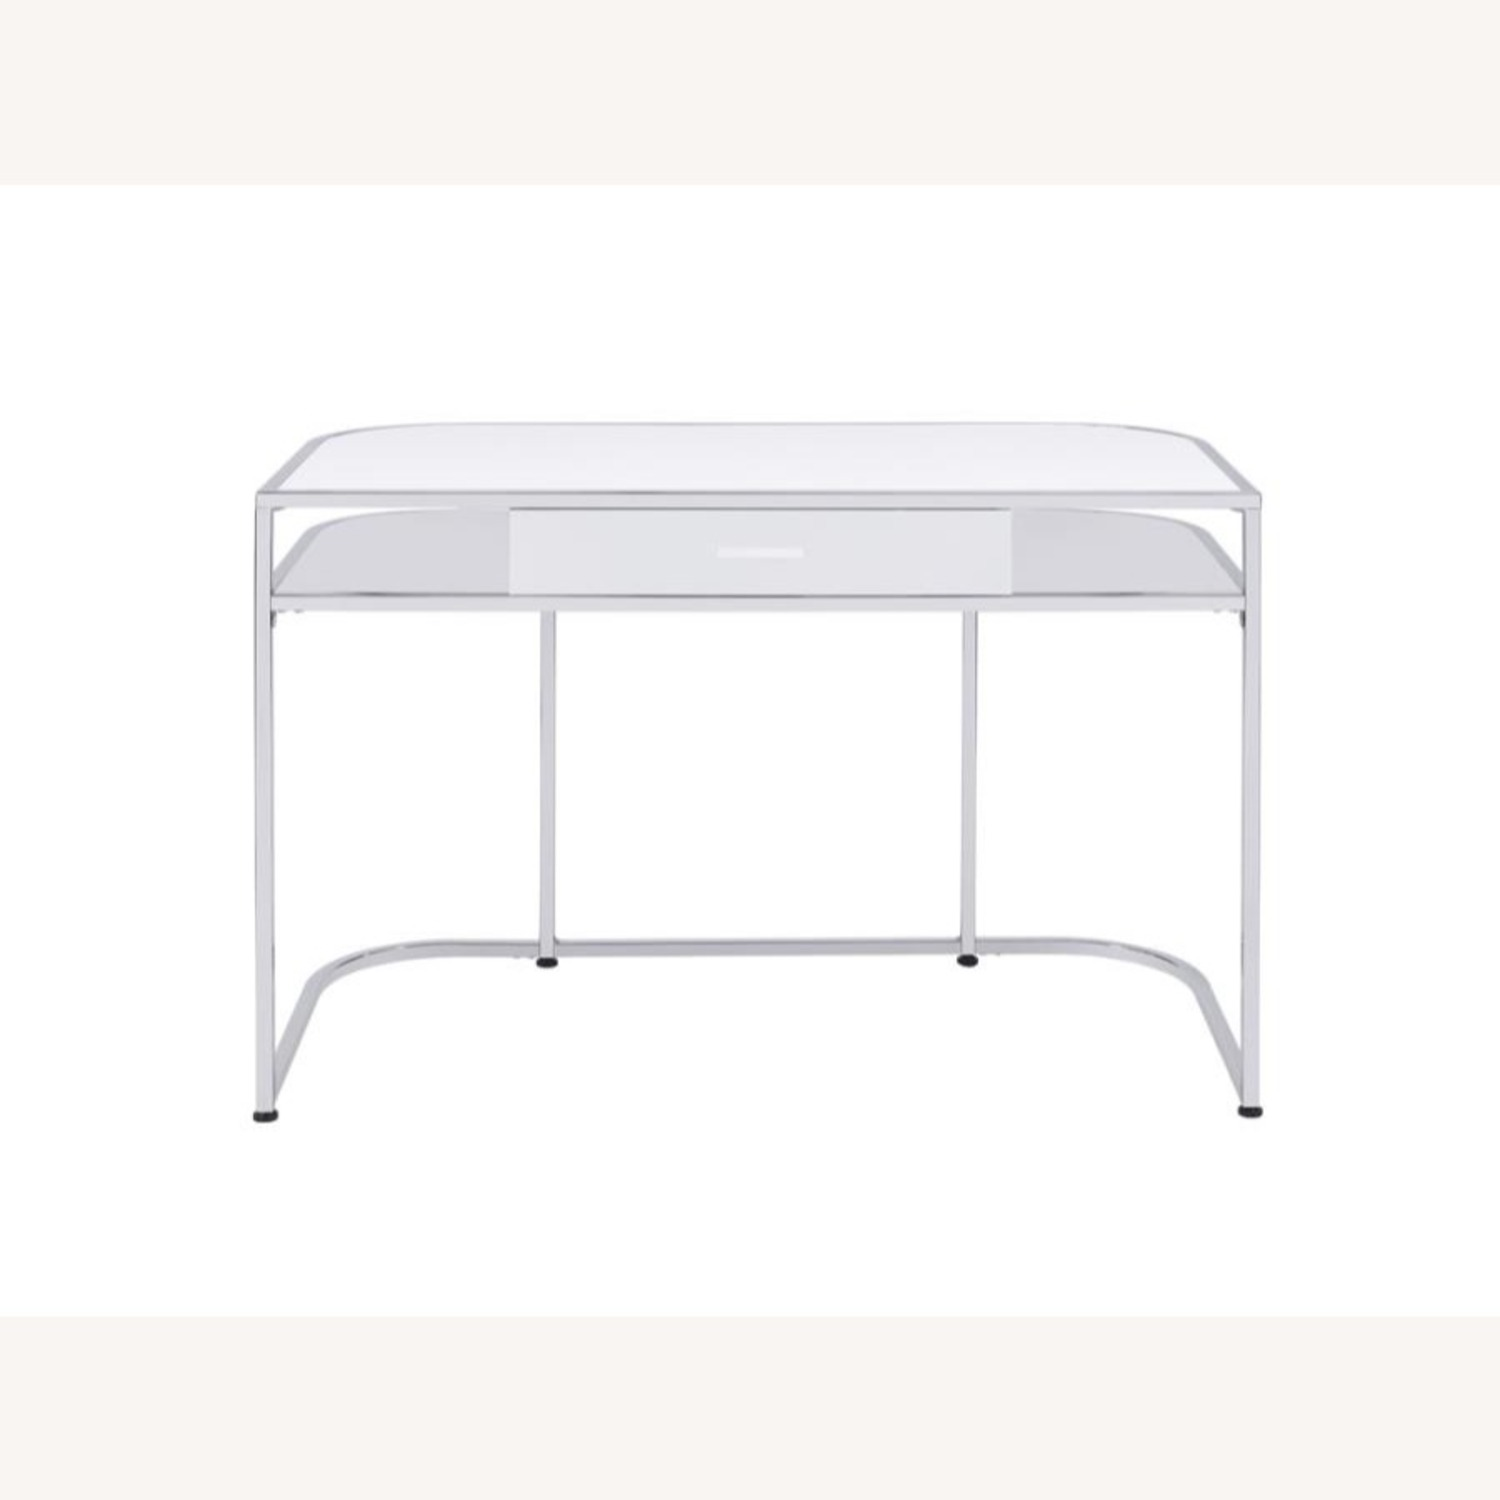 Writing Desk In White High Gloss Lacquer Finish - image-1